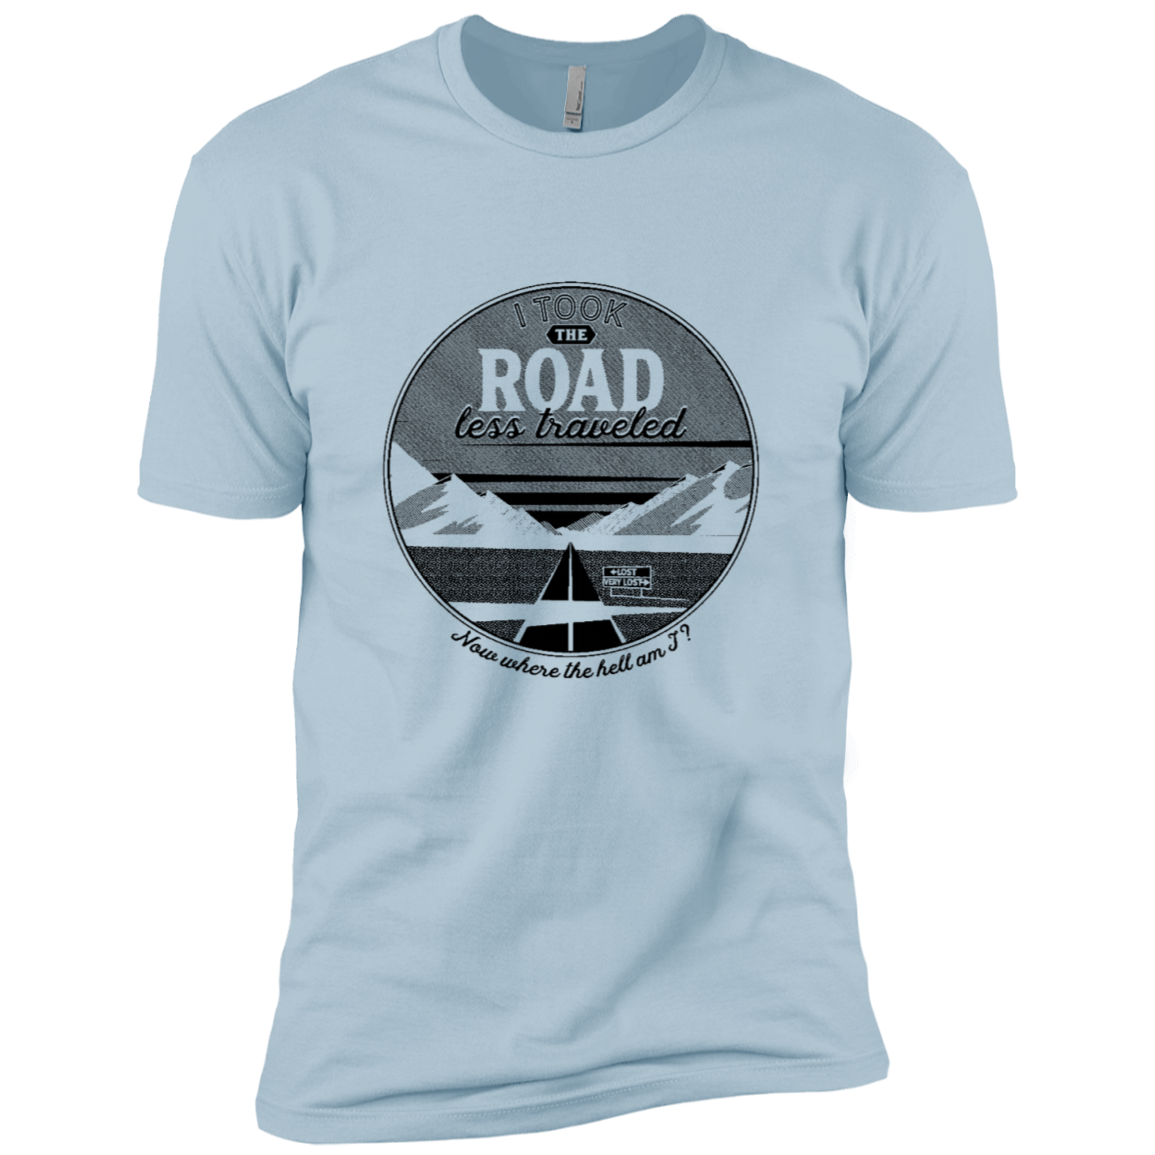 I Took The Road Less Traveled Men's Classic Tee